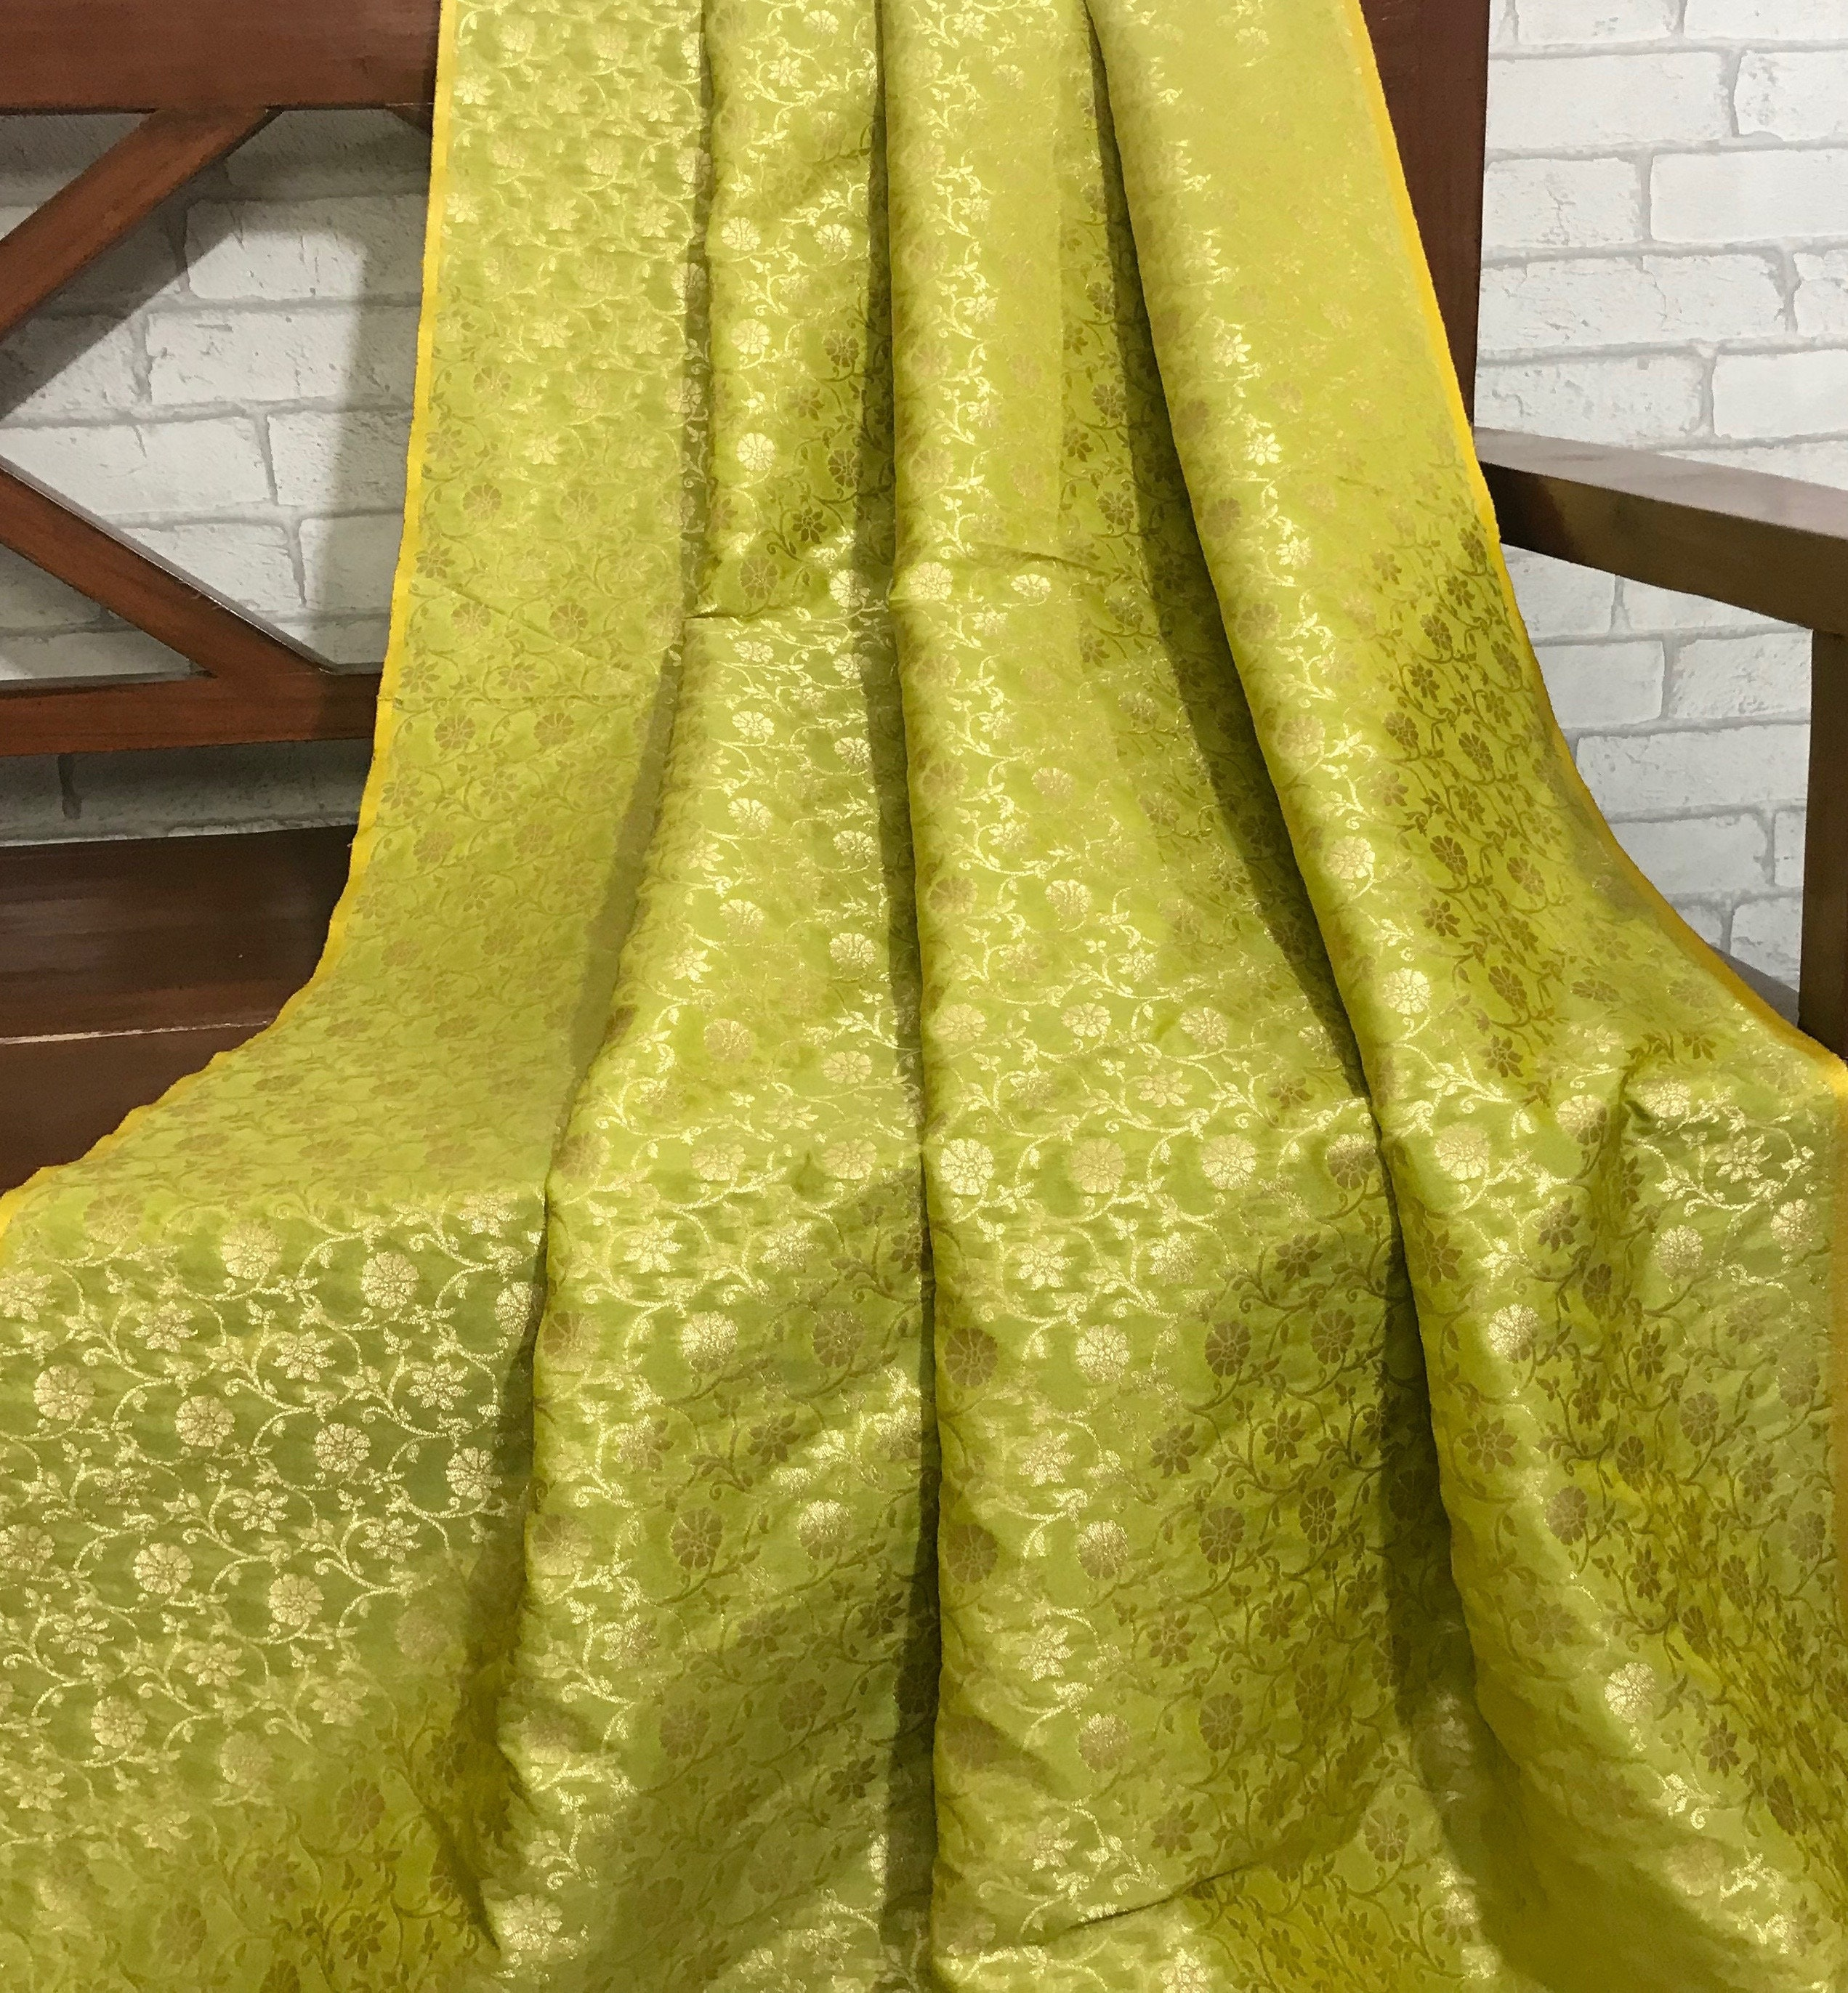 40% SALE Indian Pure Silk Brocade Fabric Lime Green and Gold Fabric,Wedding Indian brocade,Brocade by yard, dress fabric NFAF279